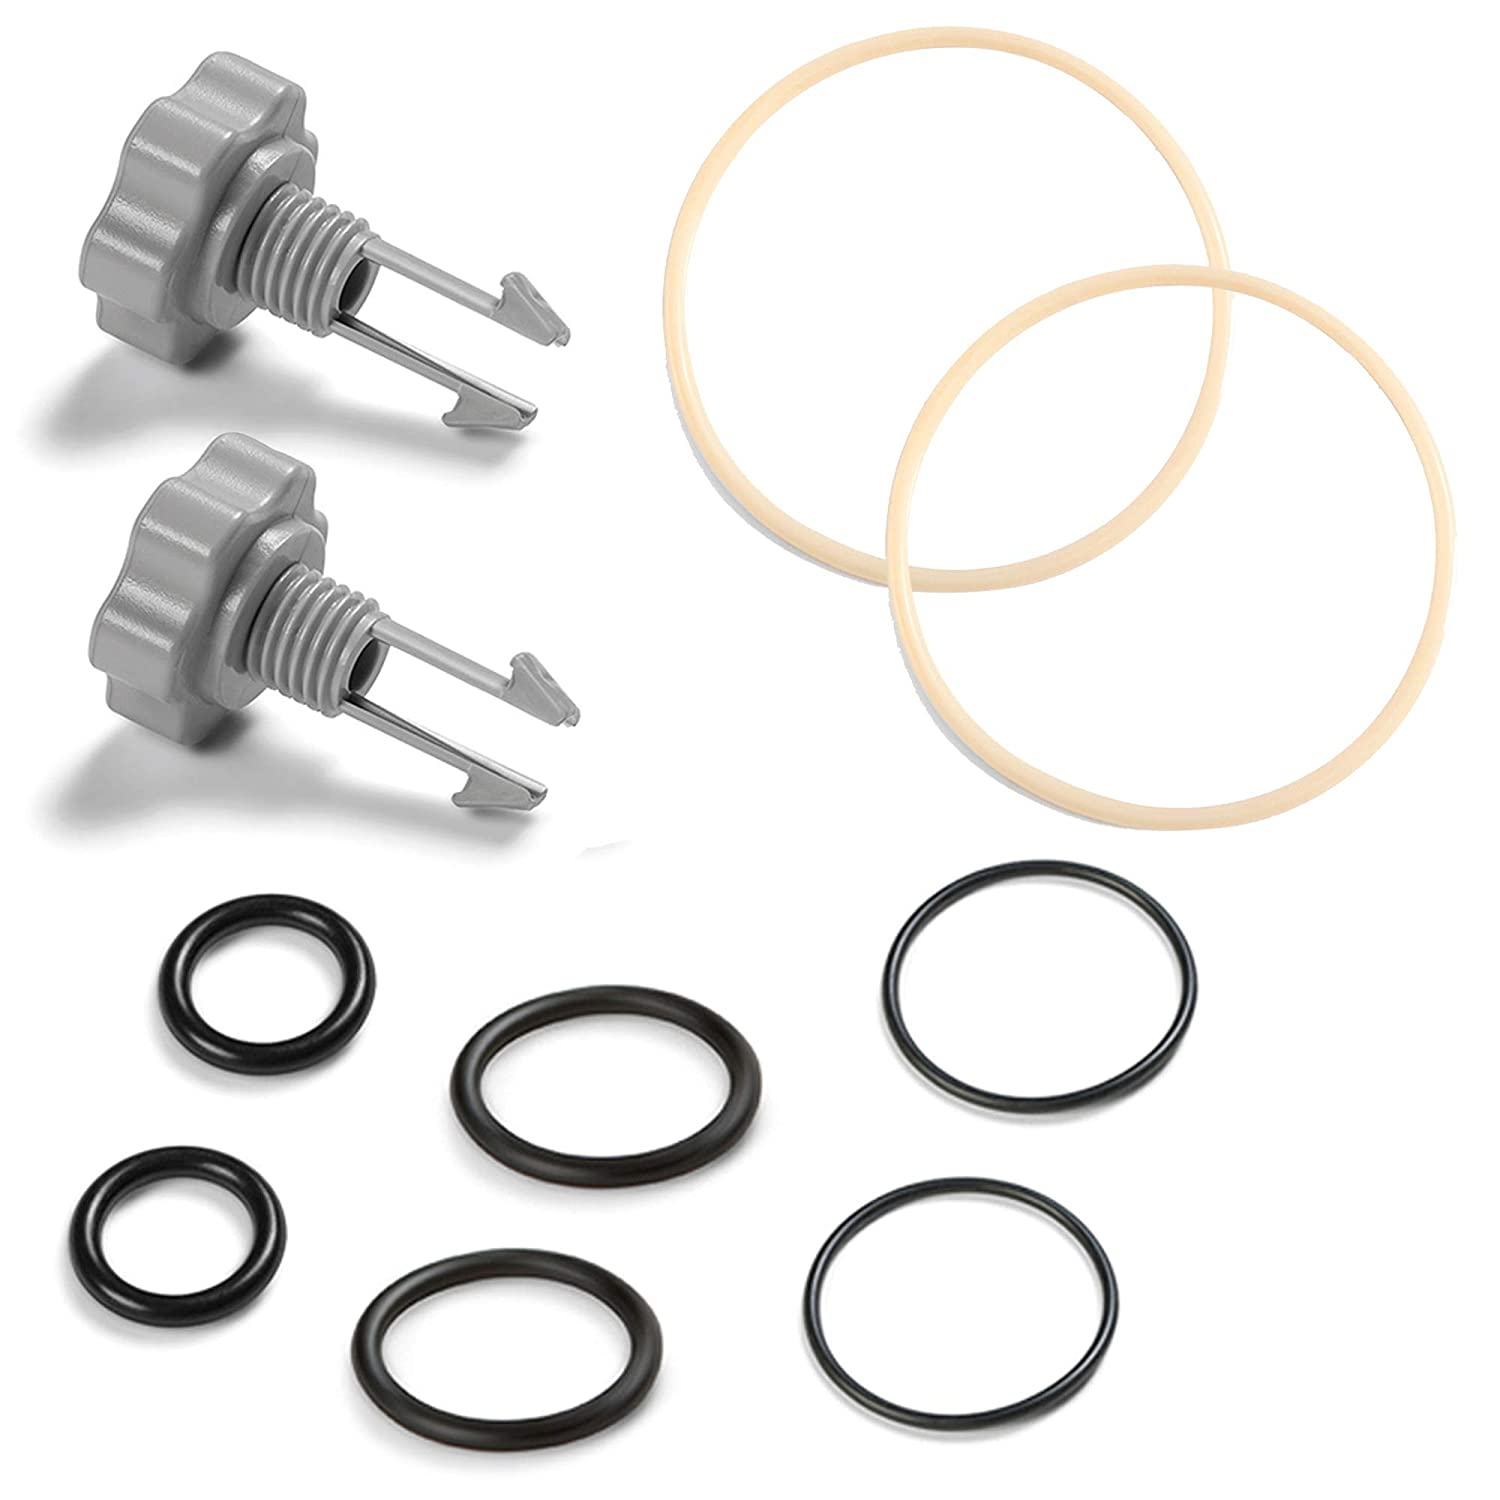 Intex 1500 gal and Below Filter Pump Seals Pack